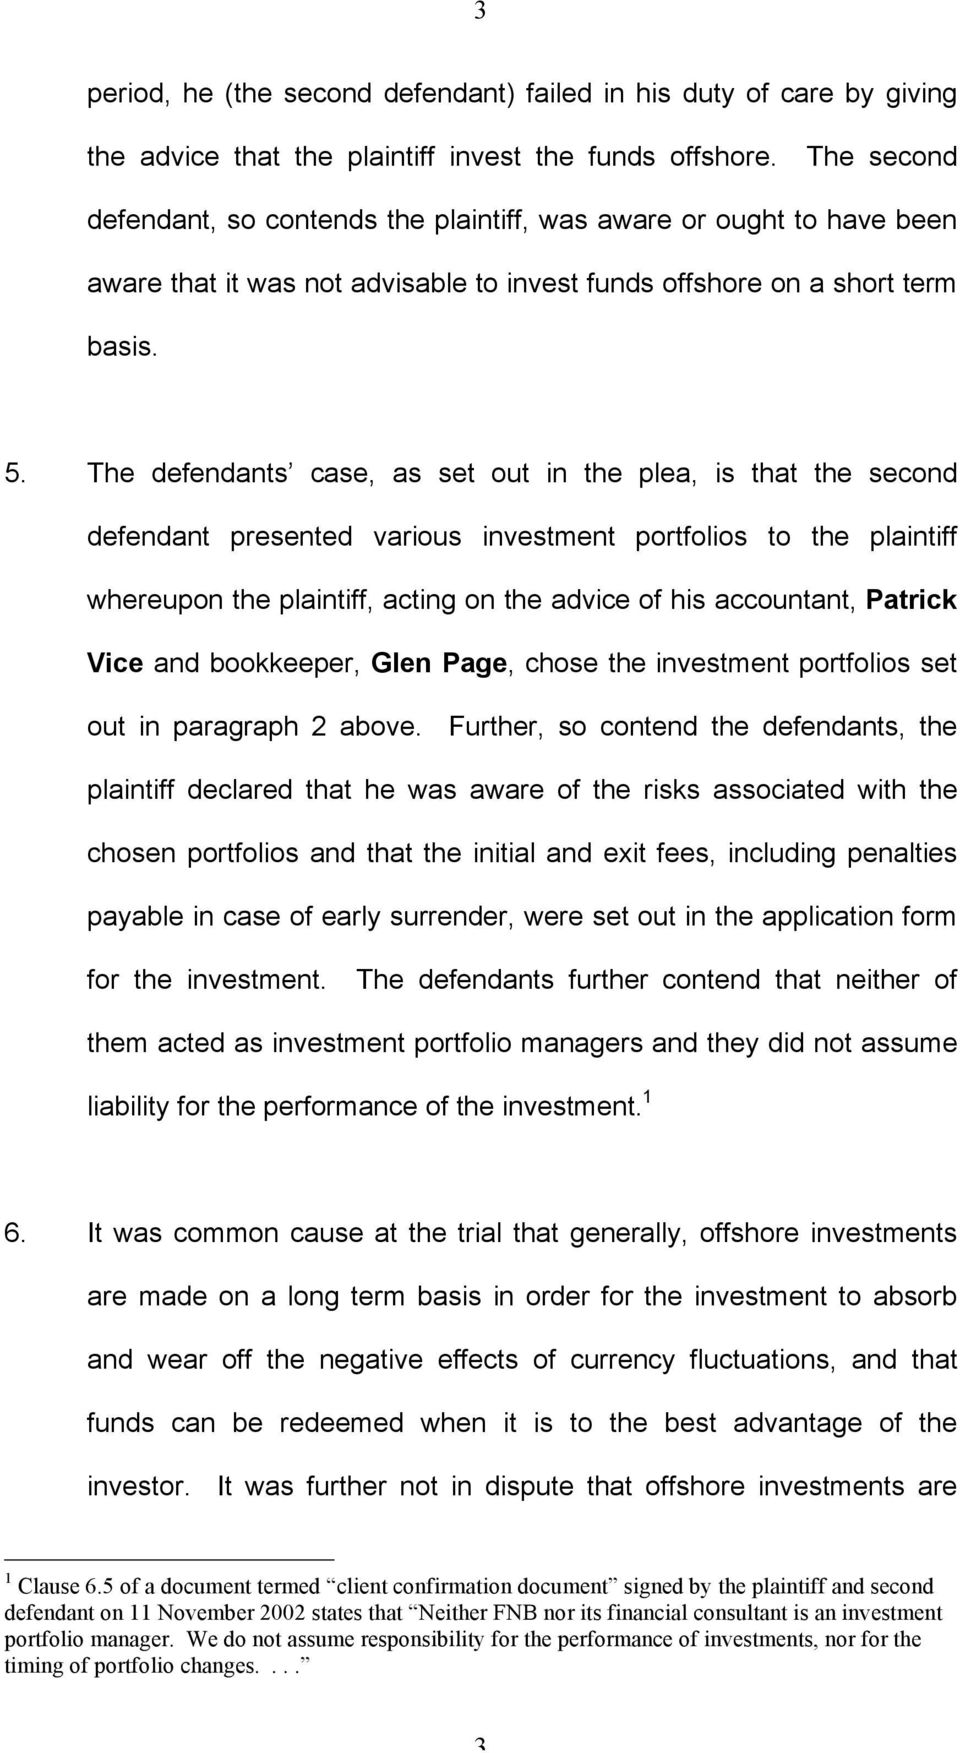 The defendants case, as set out in the plea, is that the second defendant presented various investment portfolios to the plaintiff whereupon the plaintiff, acting on the advice of his accountant,